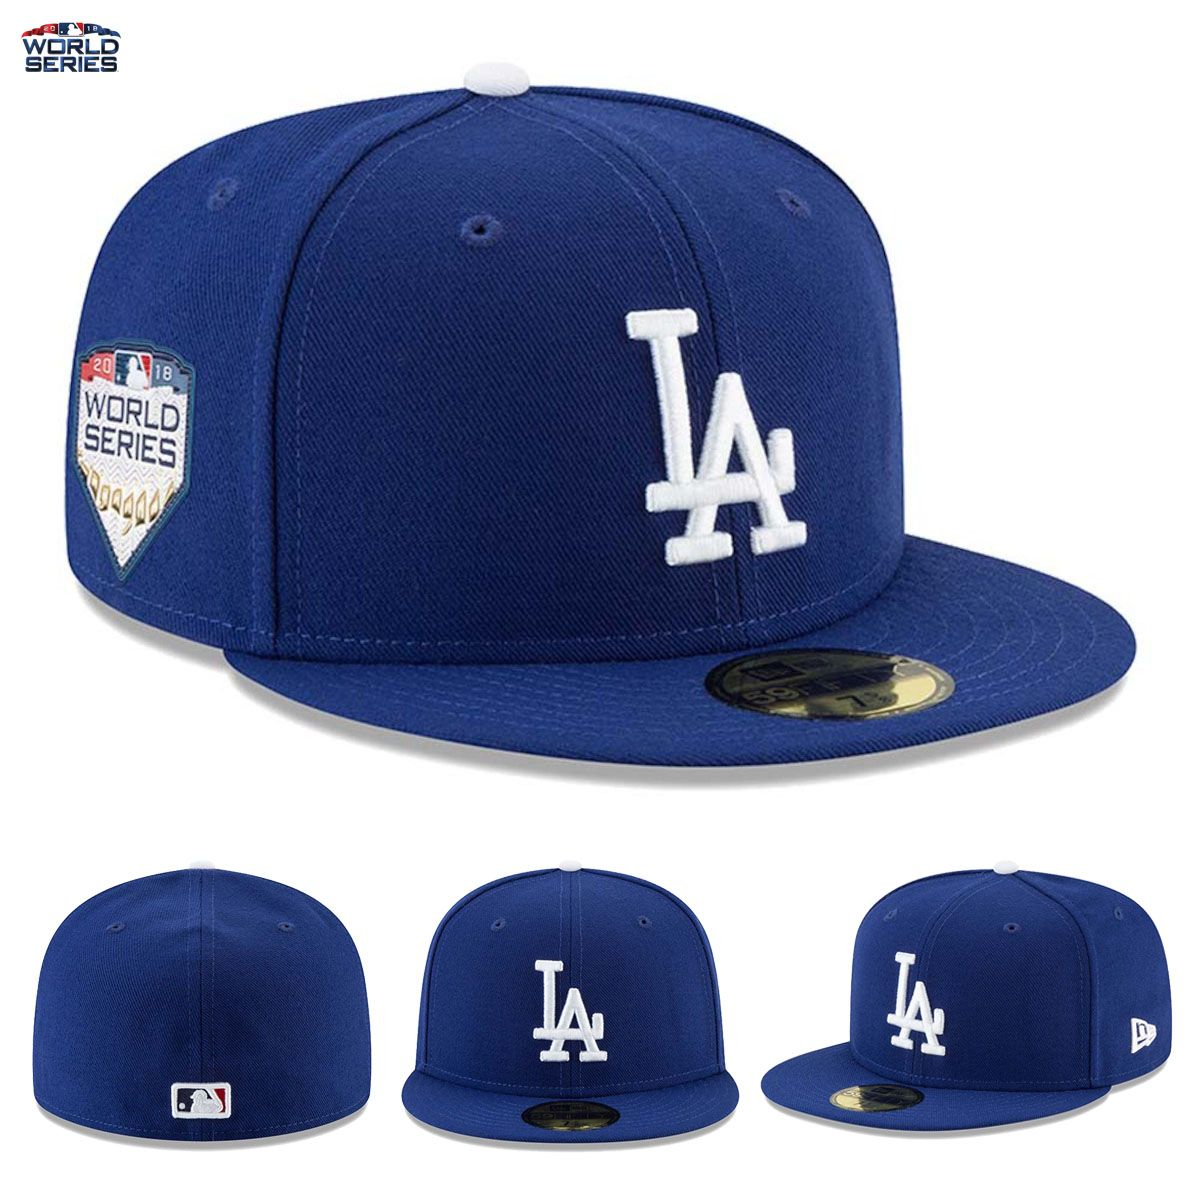 c78ceafc53d91 Details about NEW Los Angeles Dodgers New Era 59FIFTY Fitted Hat Cap ...